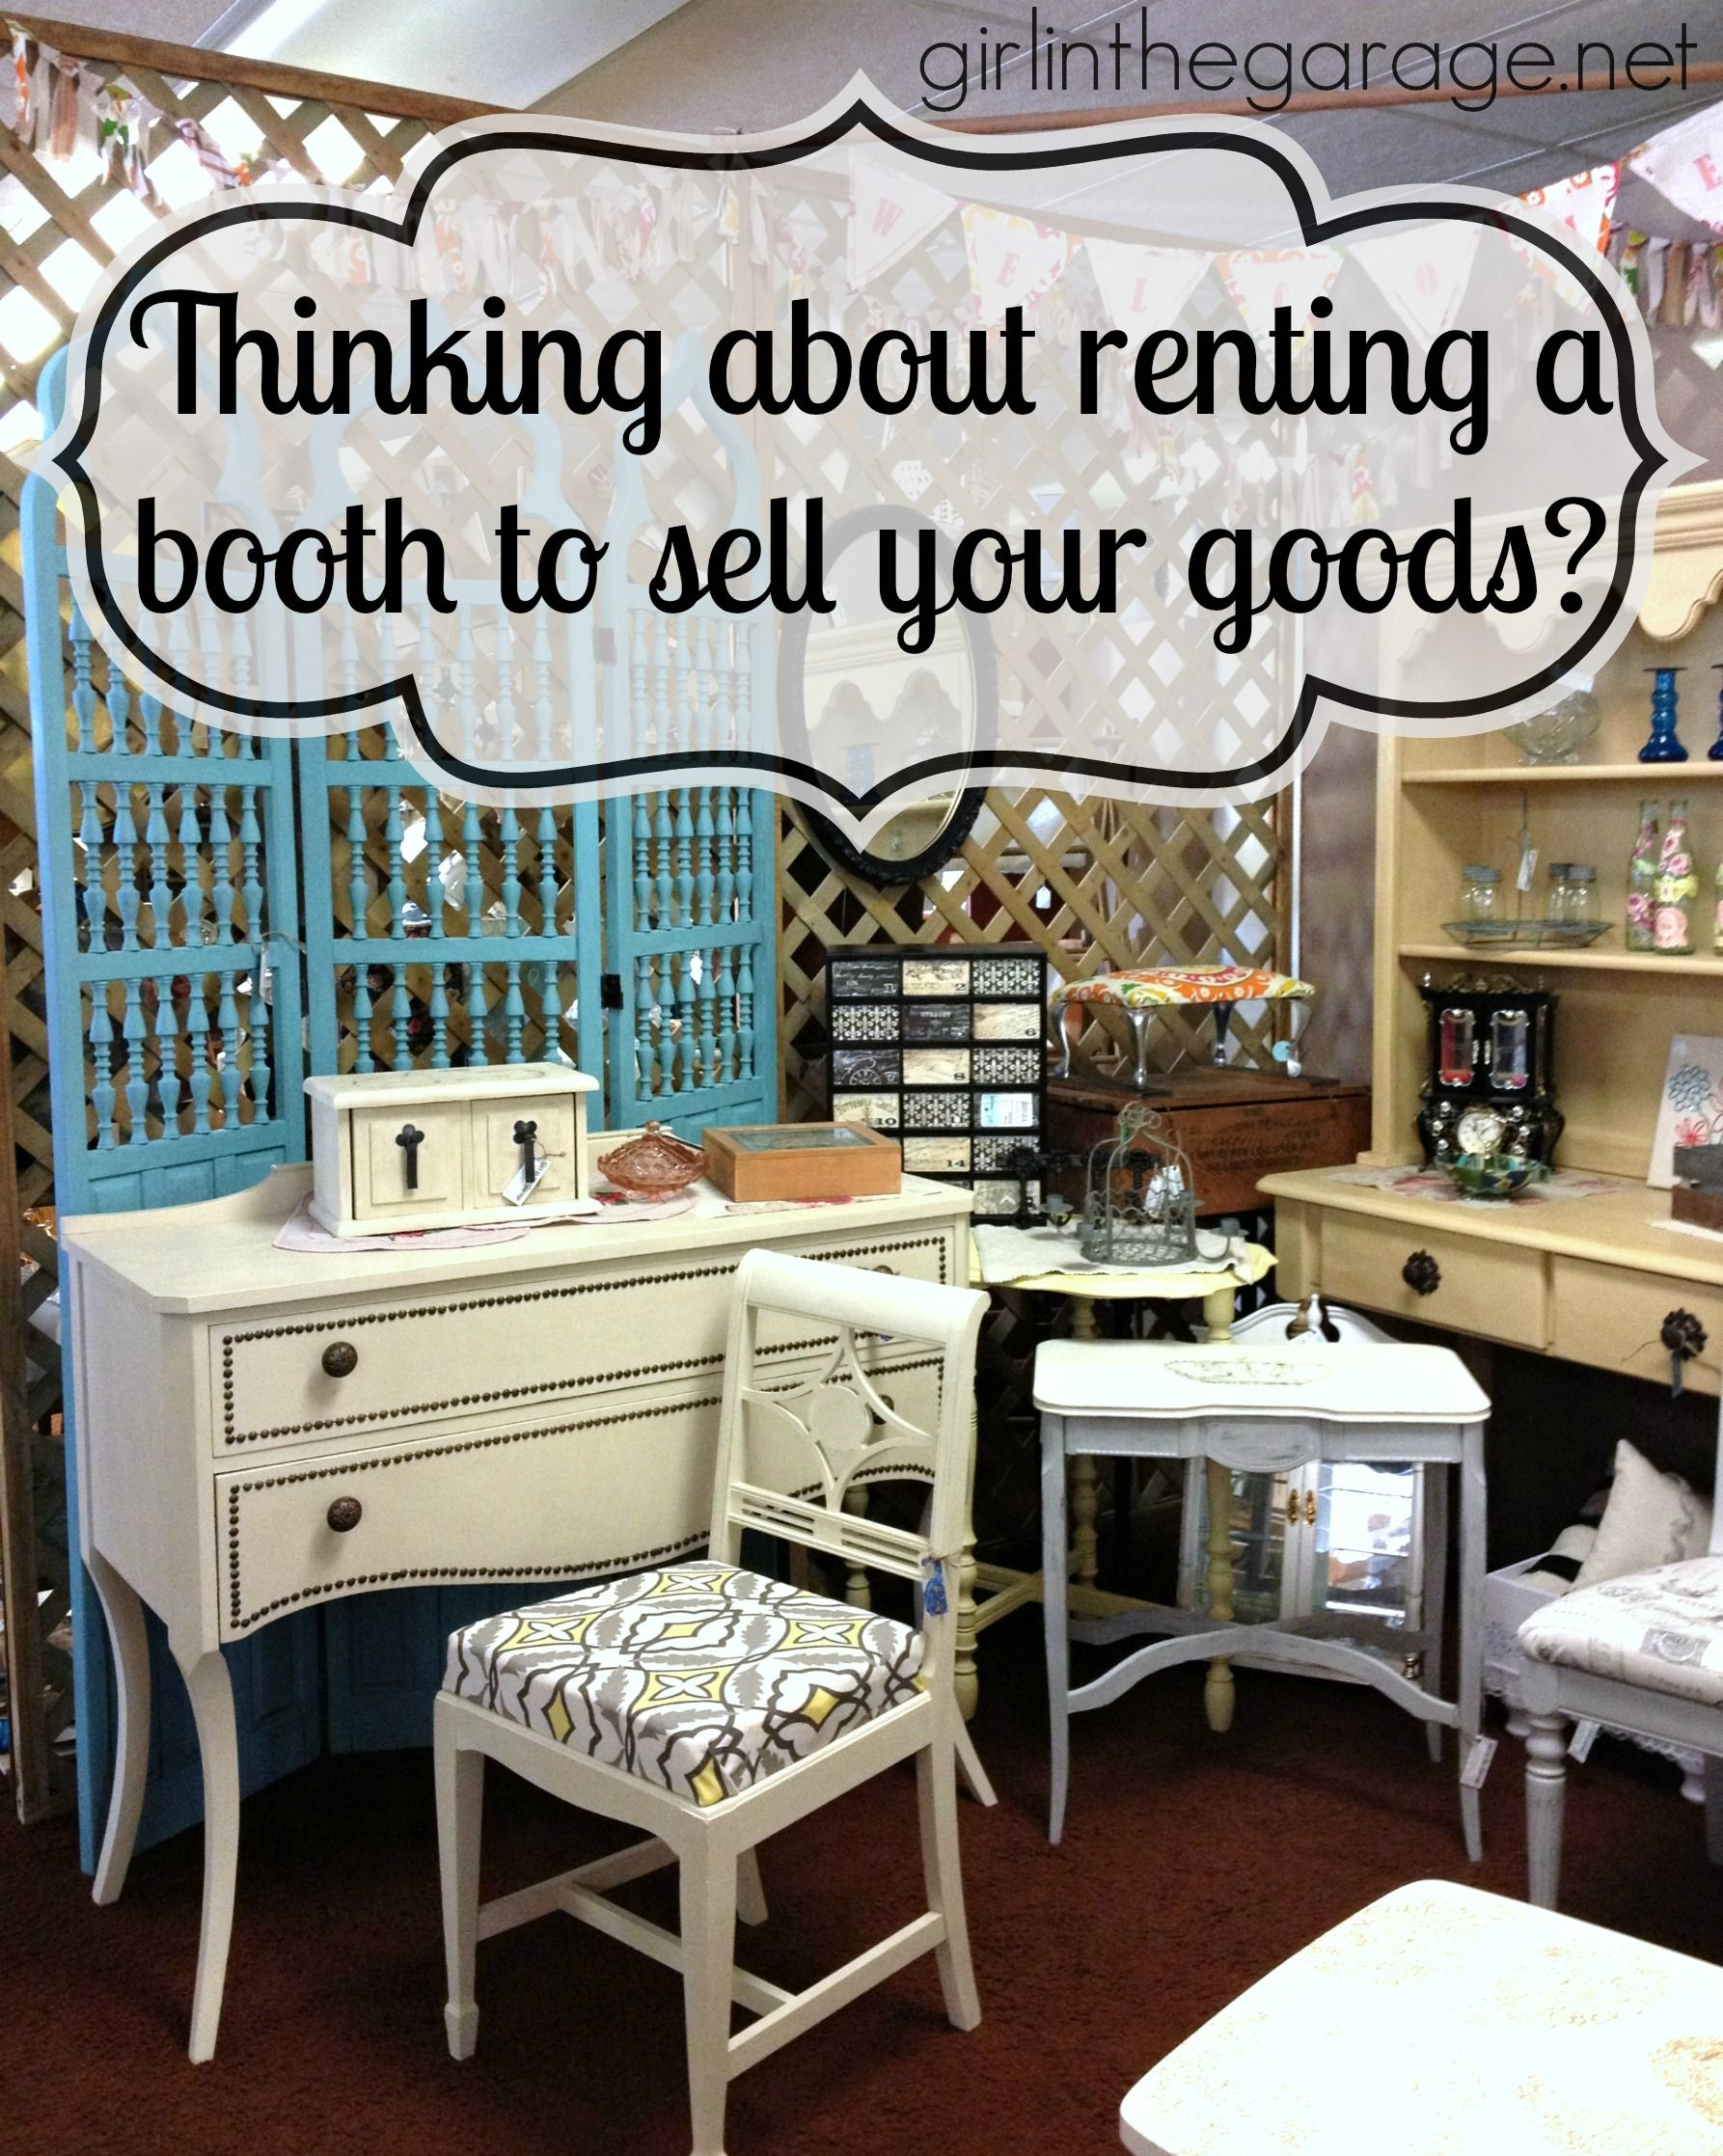 Tips For How To Rent An Antique Booth Space To Sell Your